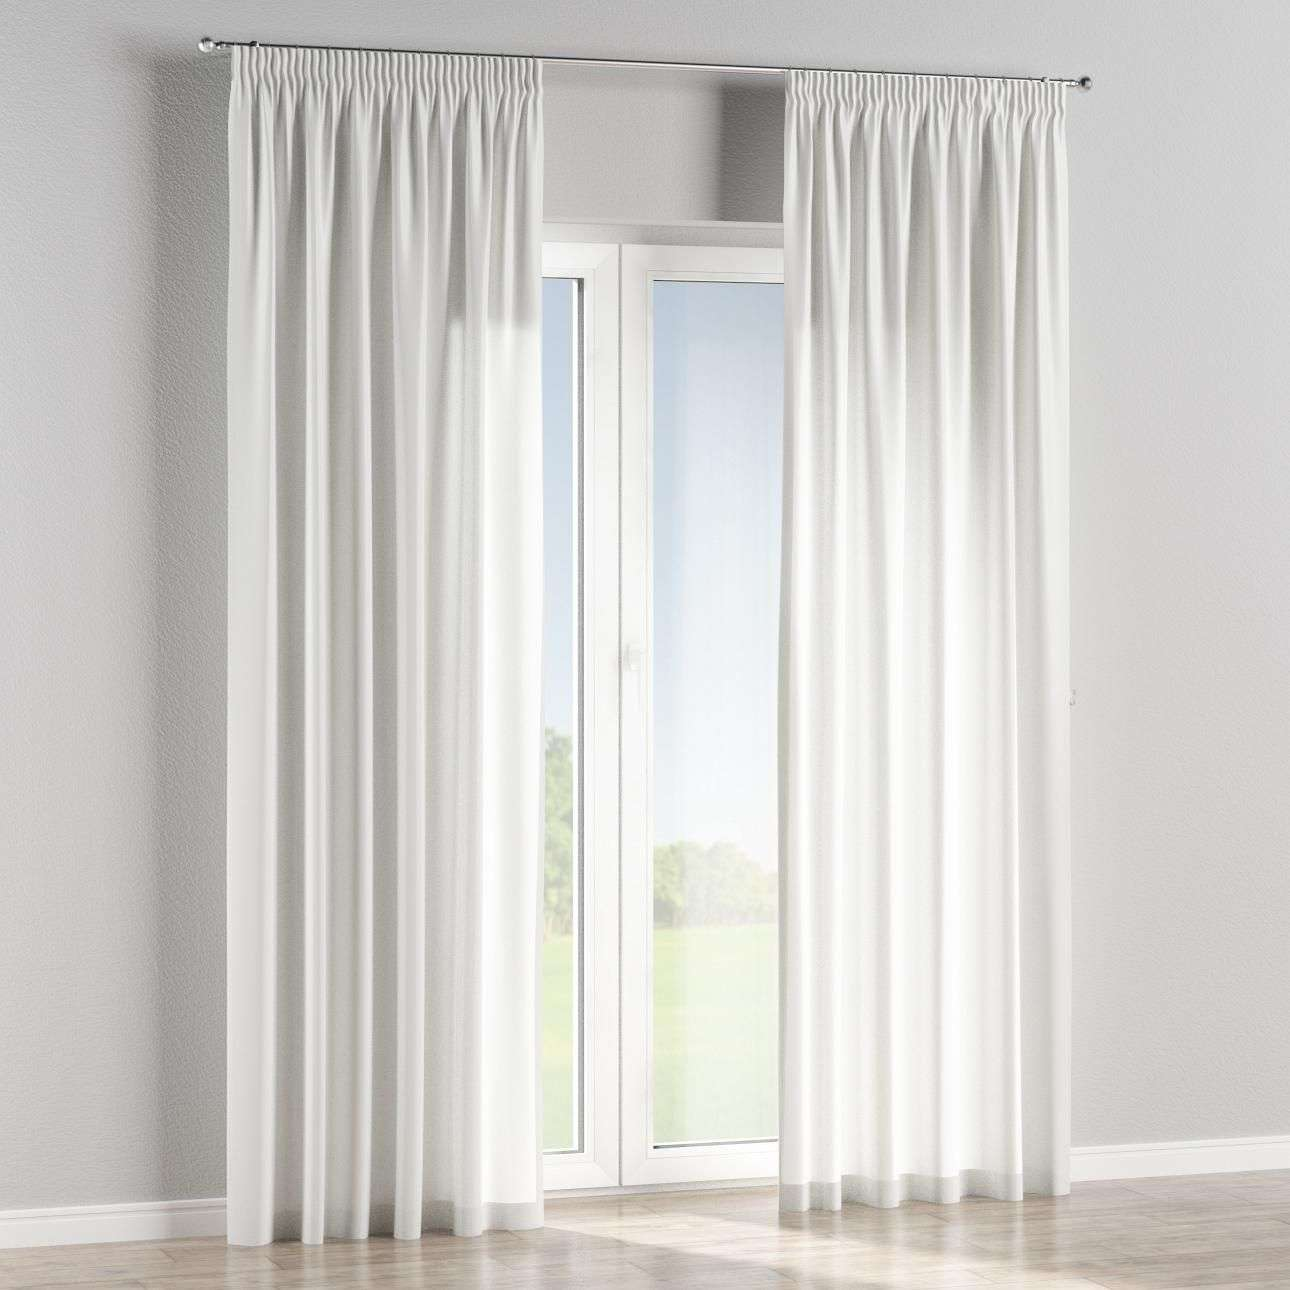 Pencil pleat curtains in collection SALE, fabric: 411-38